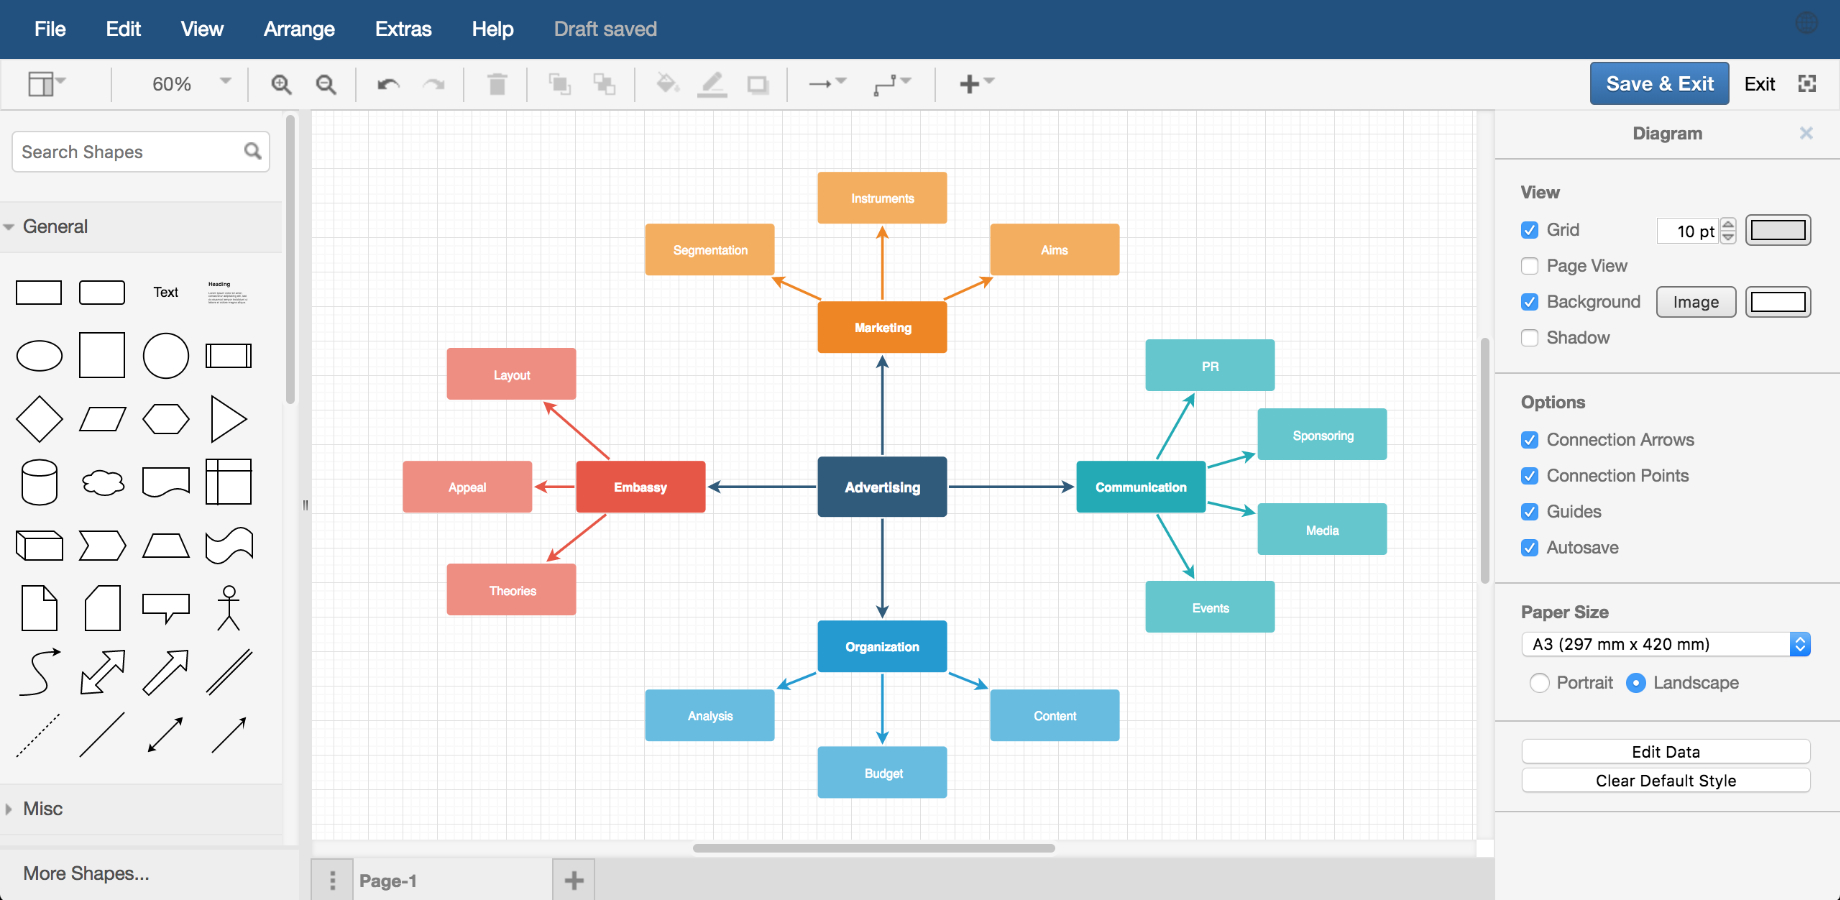 Draw.io Diagrams For Confluence | Atlassian Marketplace within Er Diagram In Draw.io